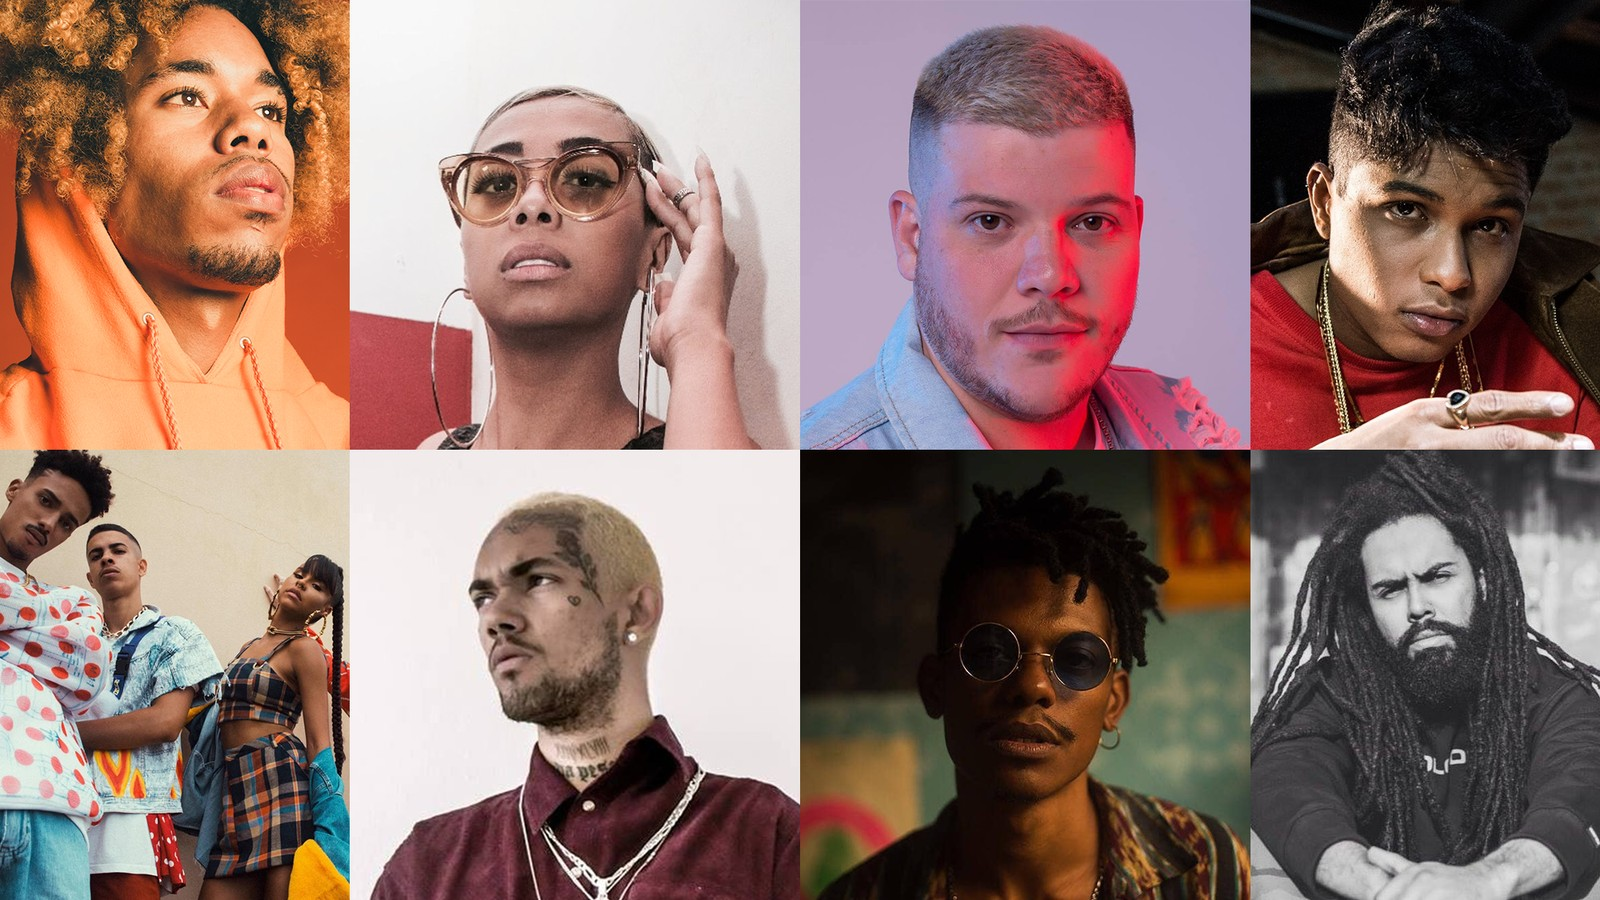 Brazil's Love Affair with R&B Has Birthed an Incredible New Genre